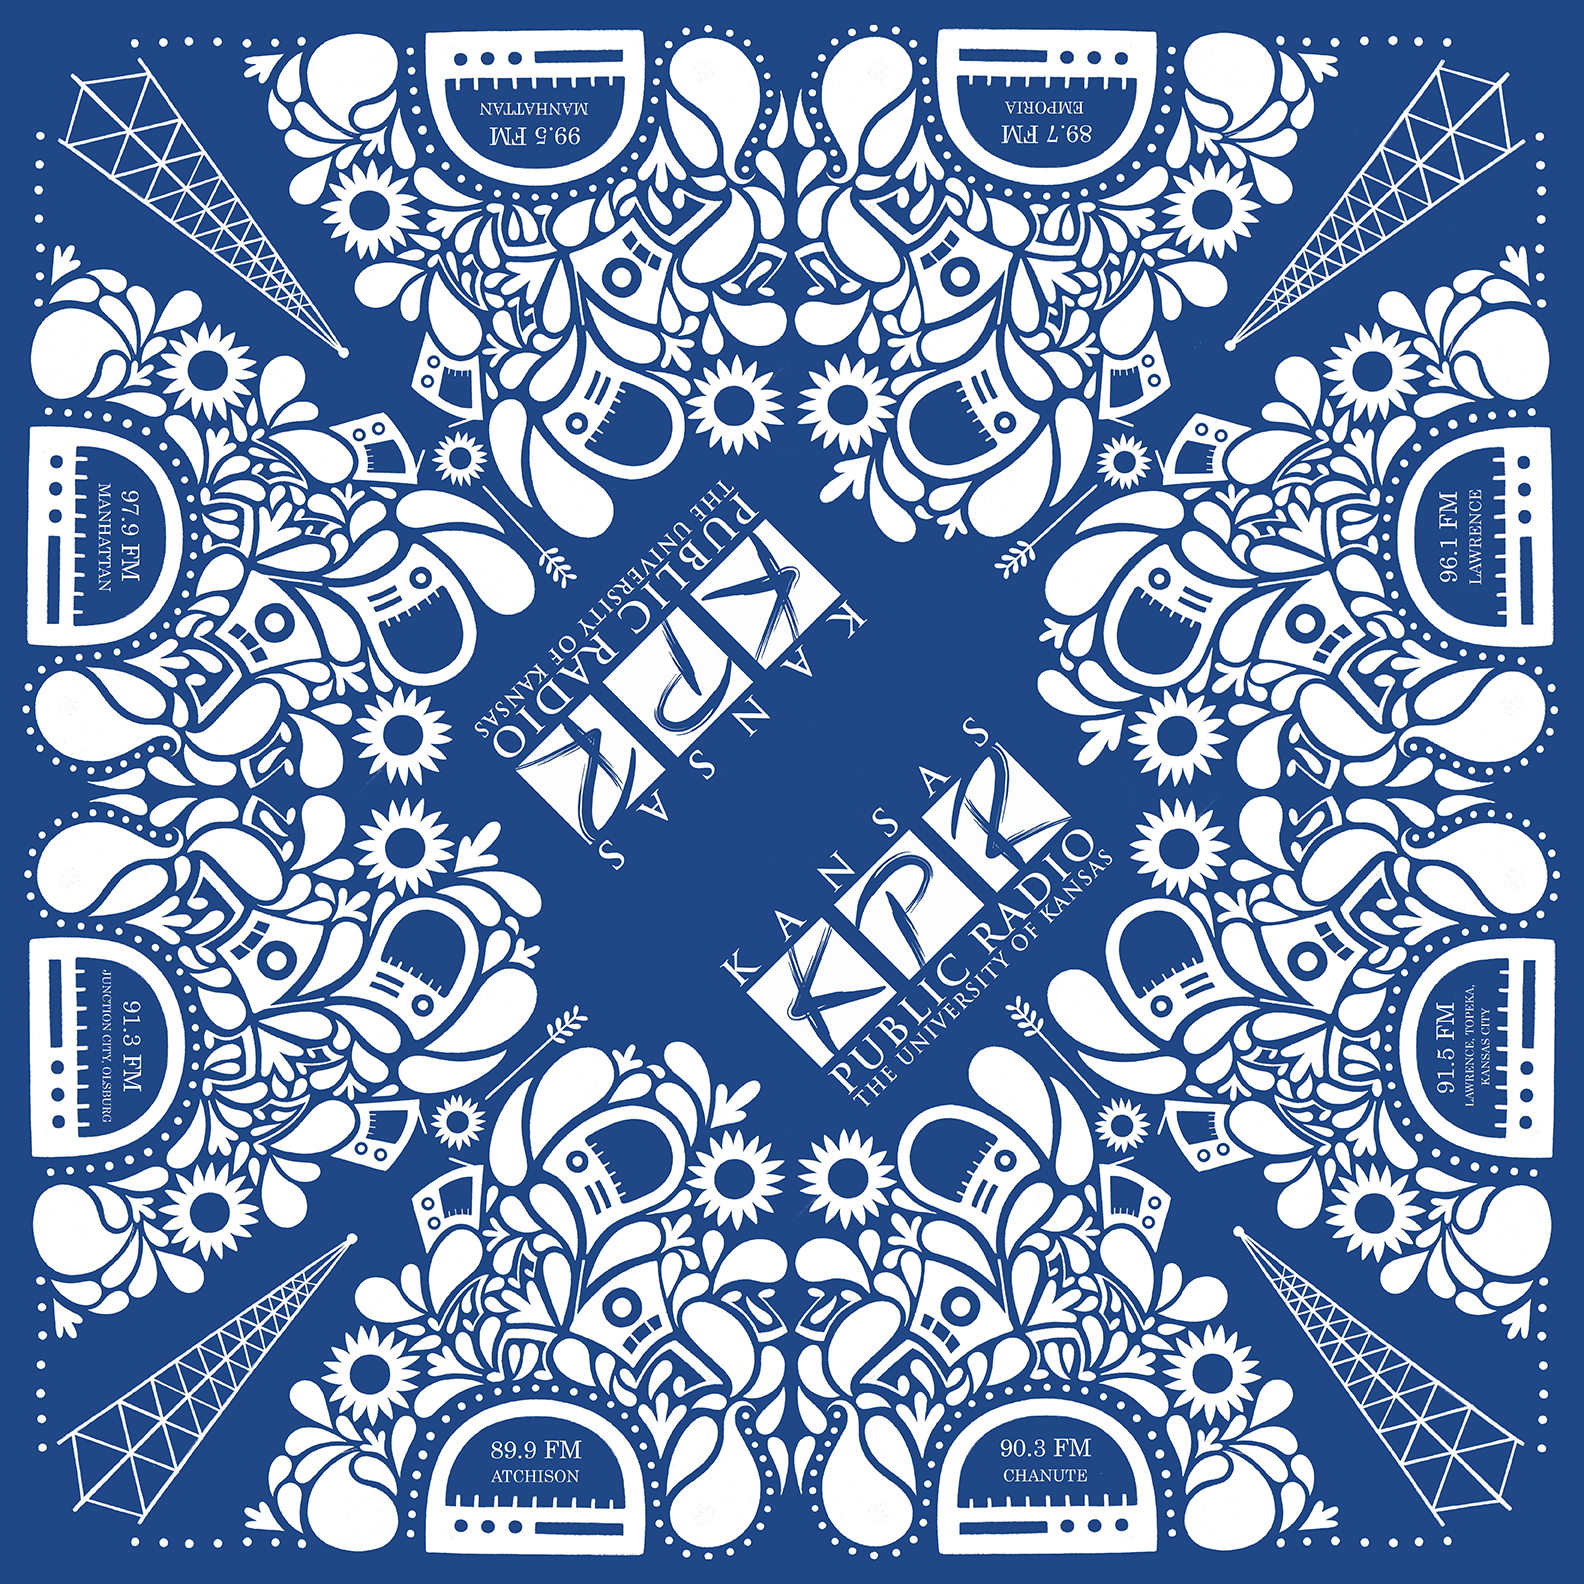 """These custom KPR bandanas were designed by our very own talented intern, Emily Fisher (a design student at the University of Kansas). Bandana measures 21 ½"""" x 21 ½"""", royal blue with white imprint."""